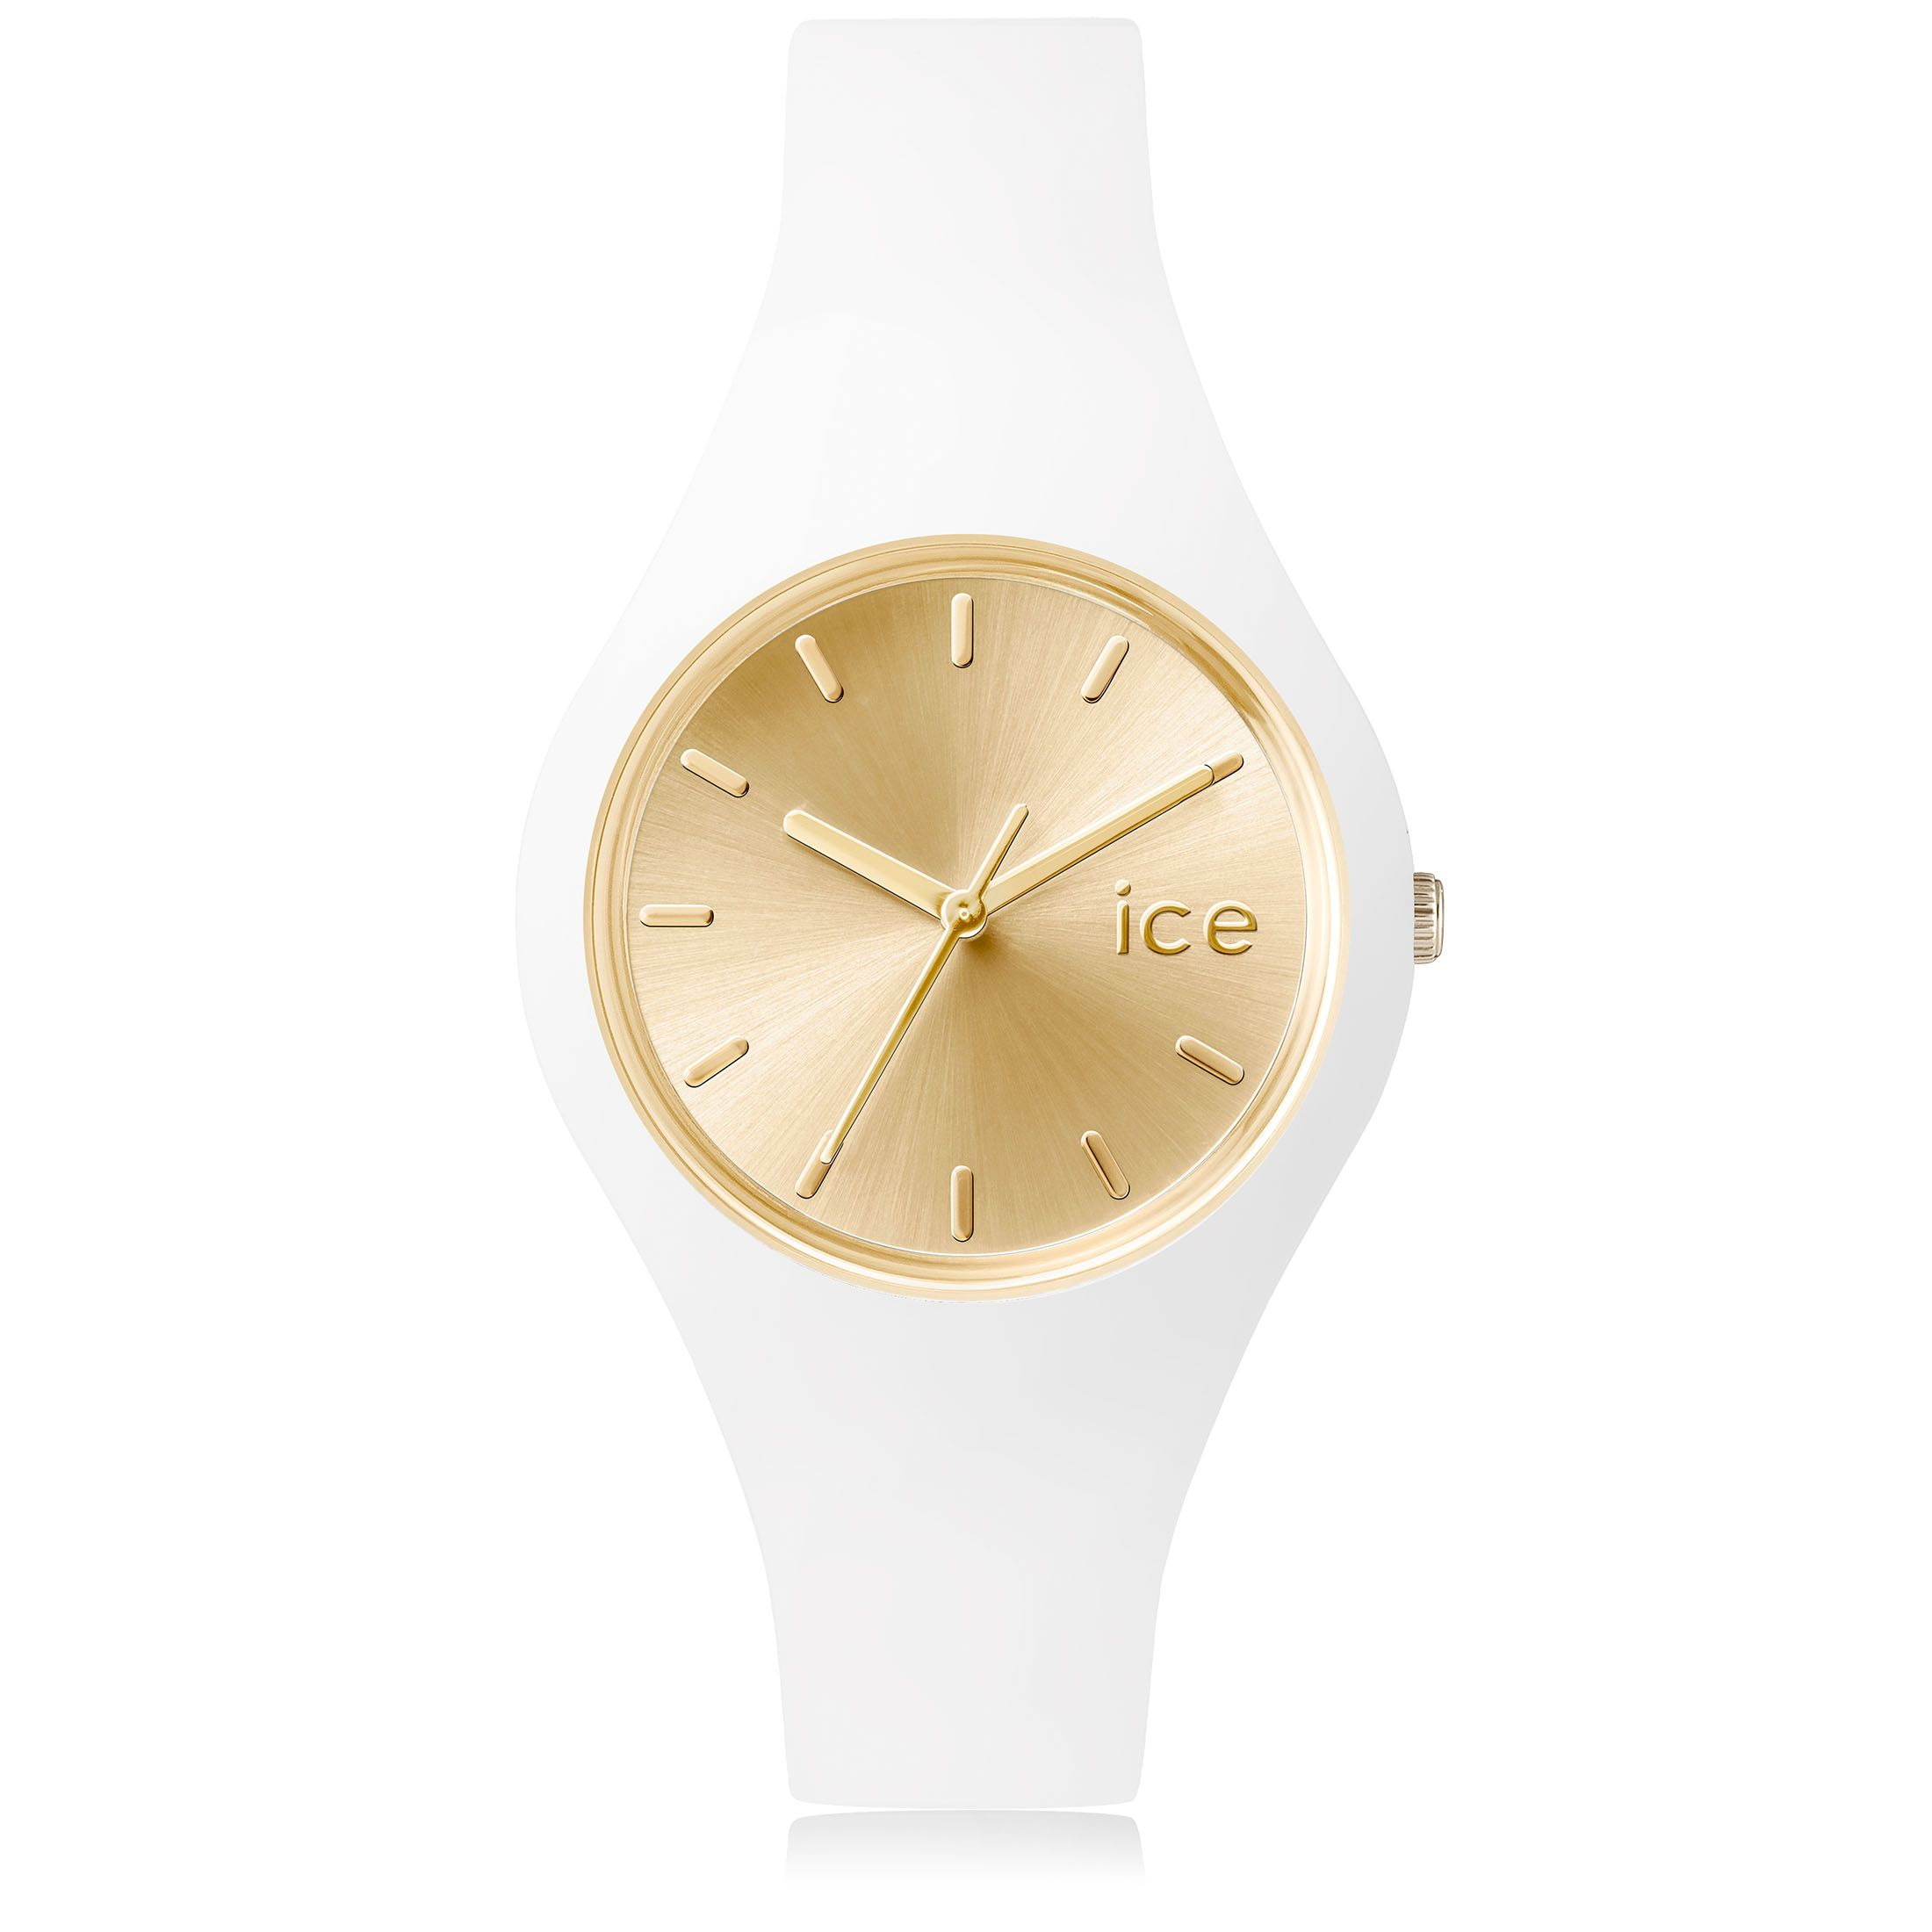 34fa02c3544d8 Montre Ice-Watch ICE chic - blanches - Moyenne | Accessori | Montre ...